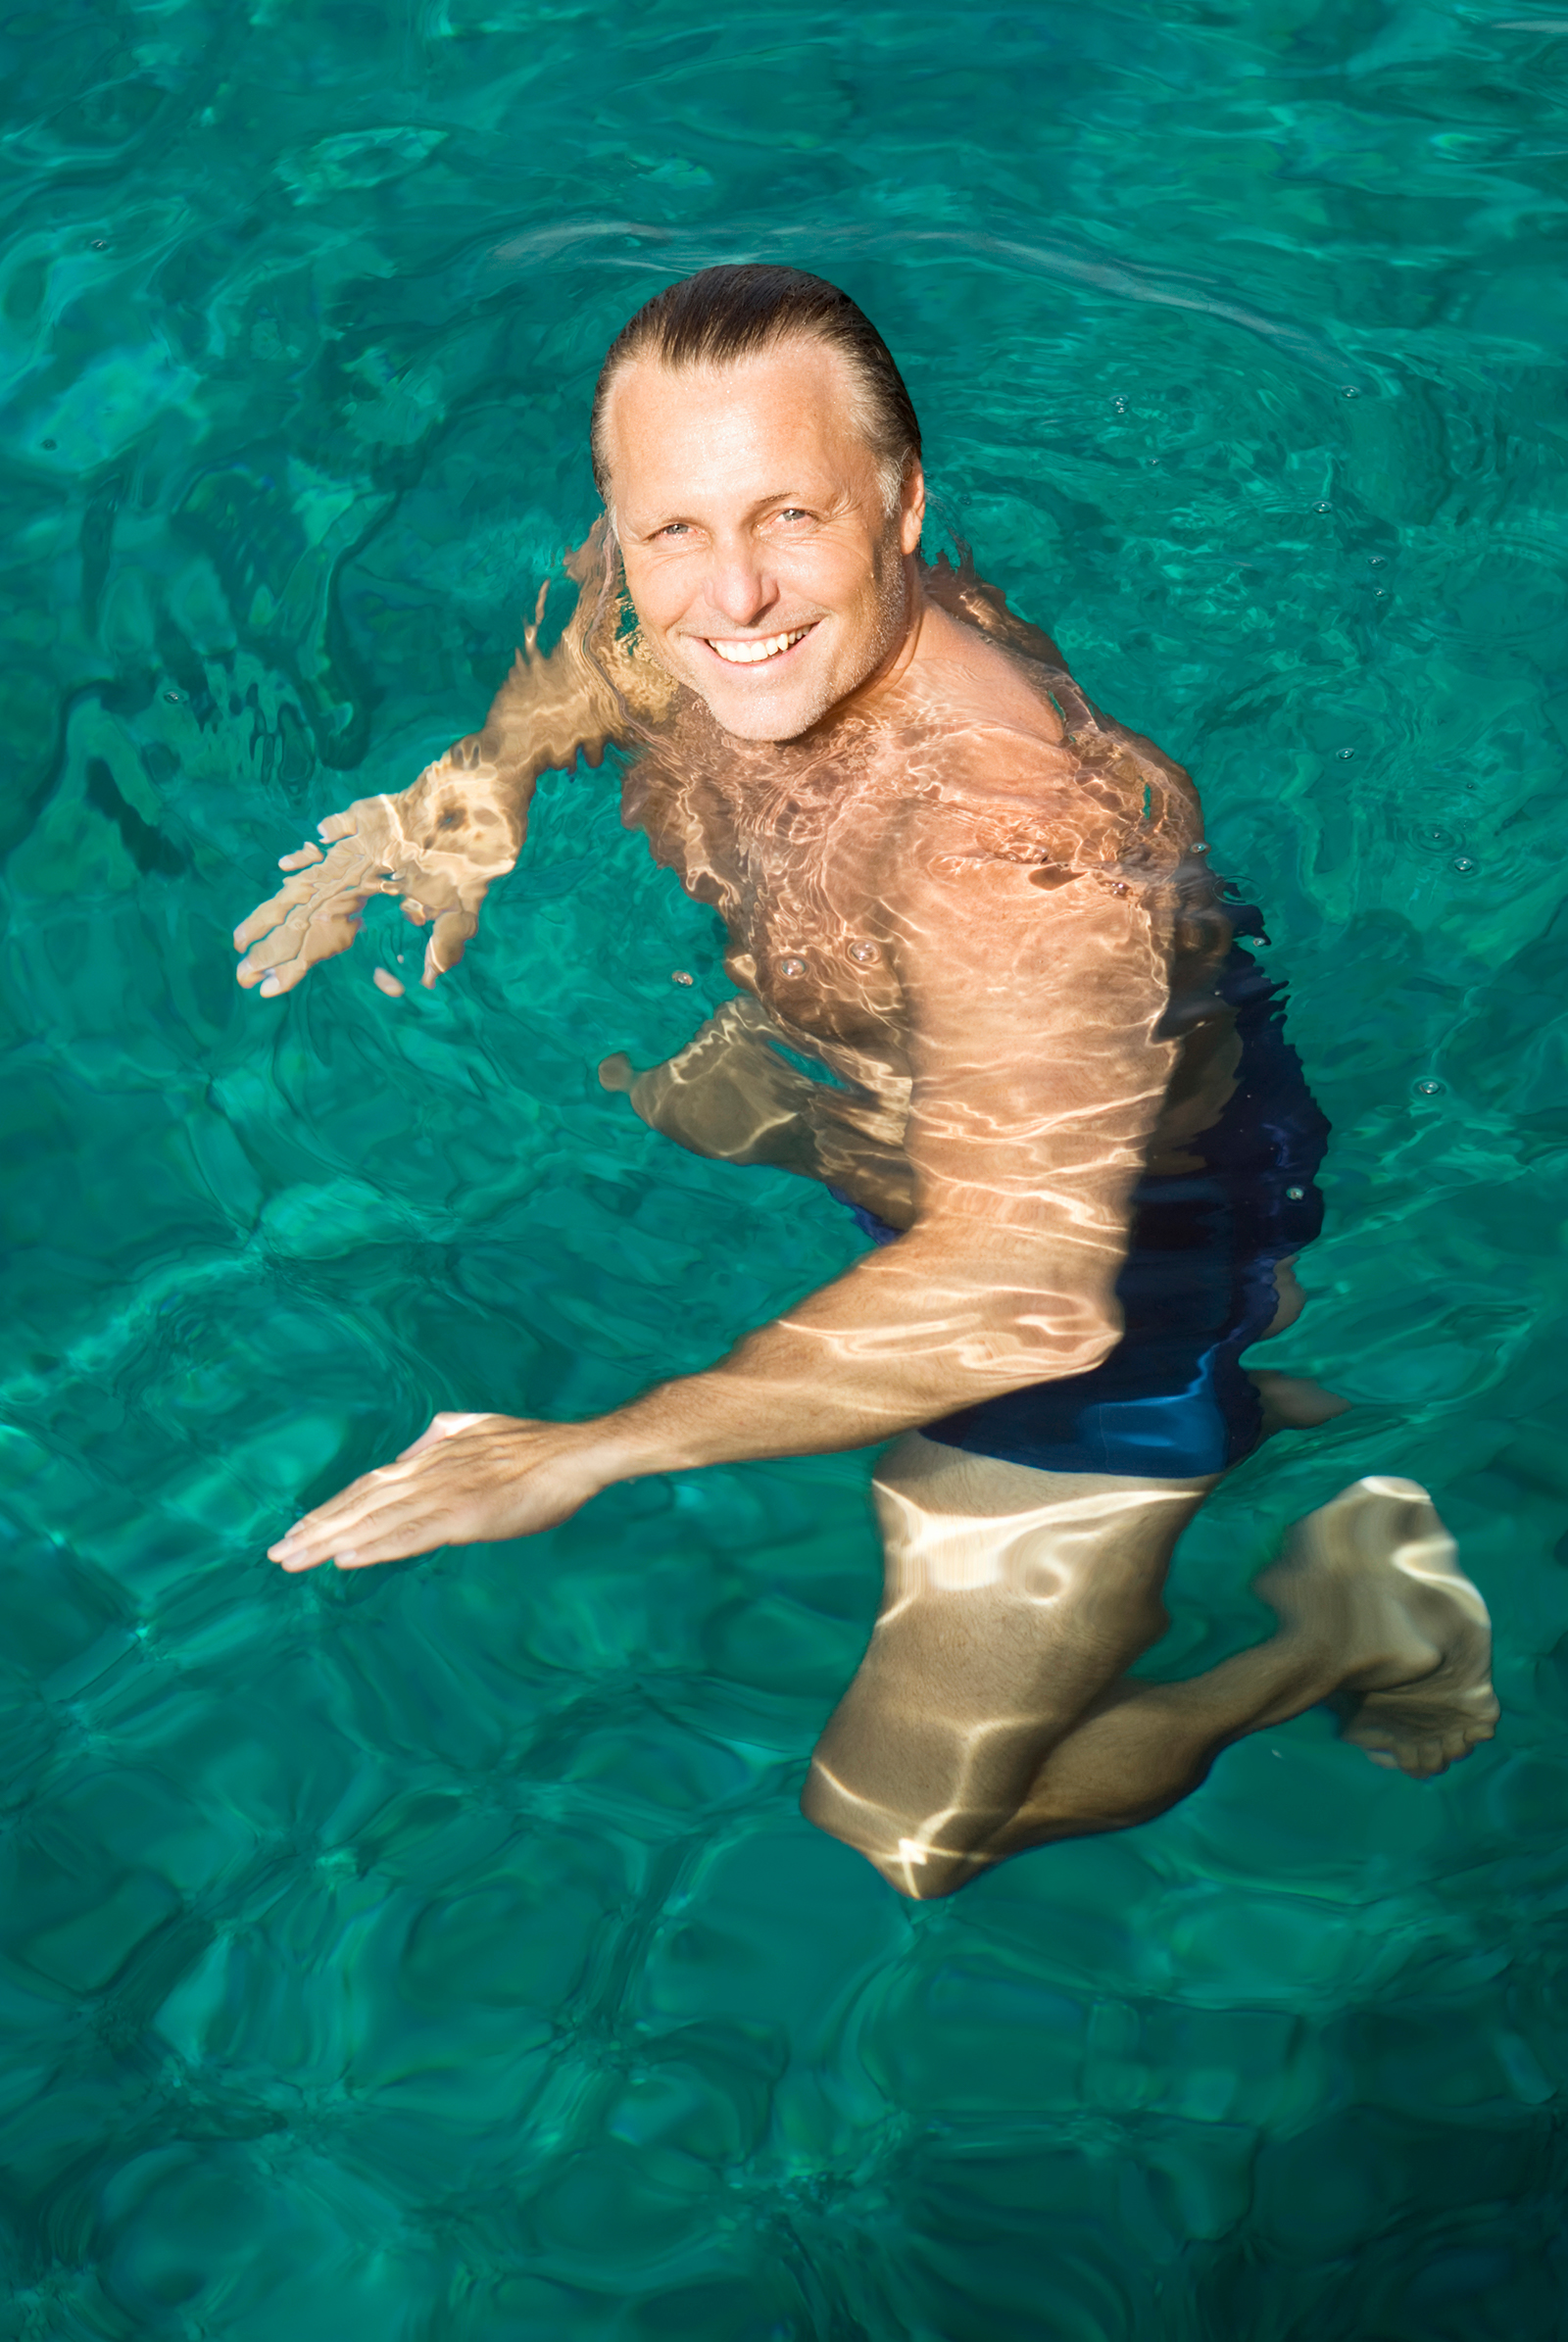 A man smiling while treading water.